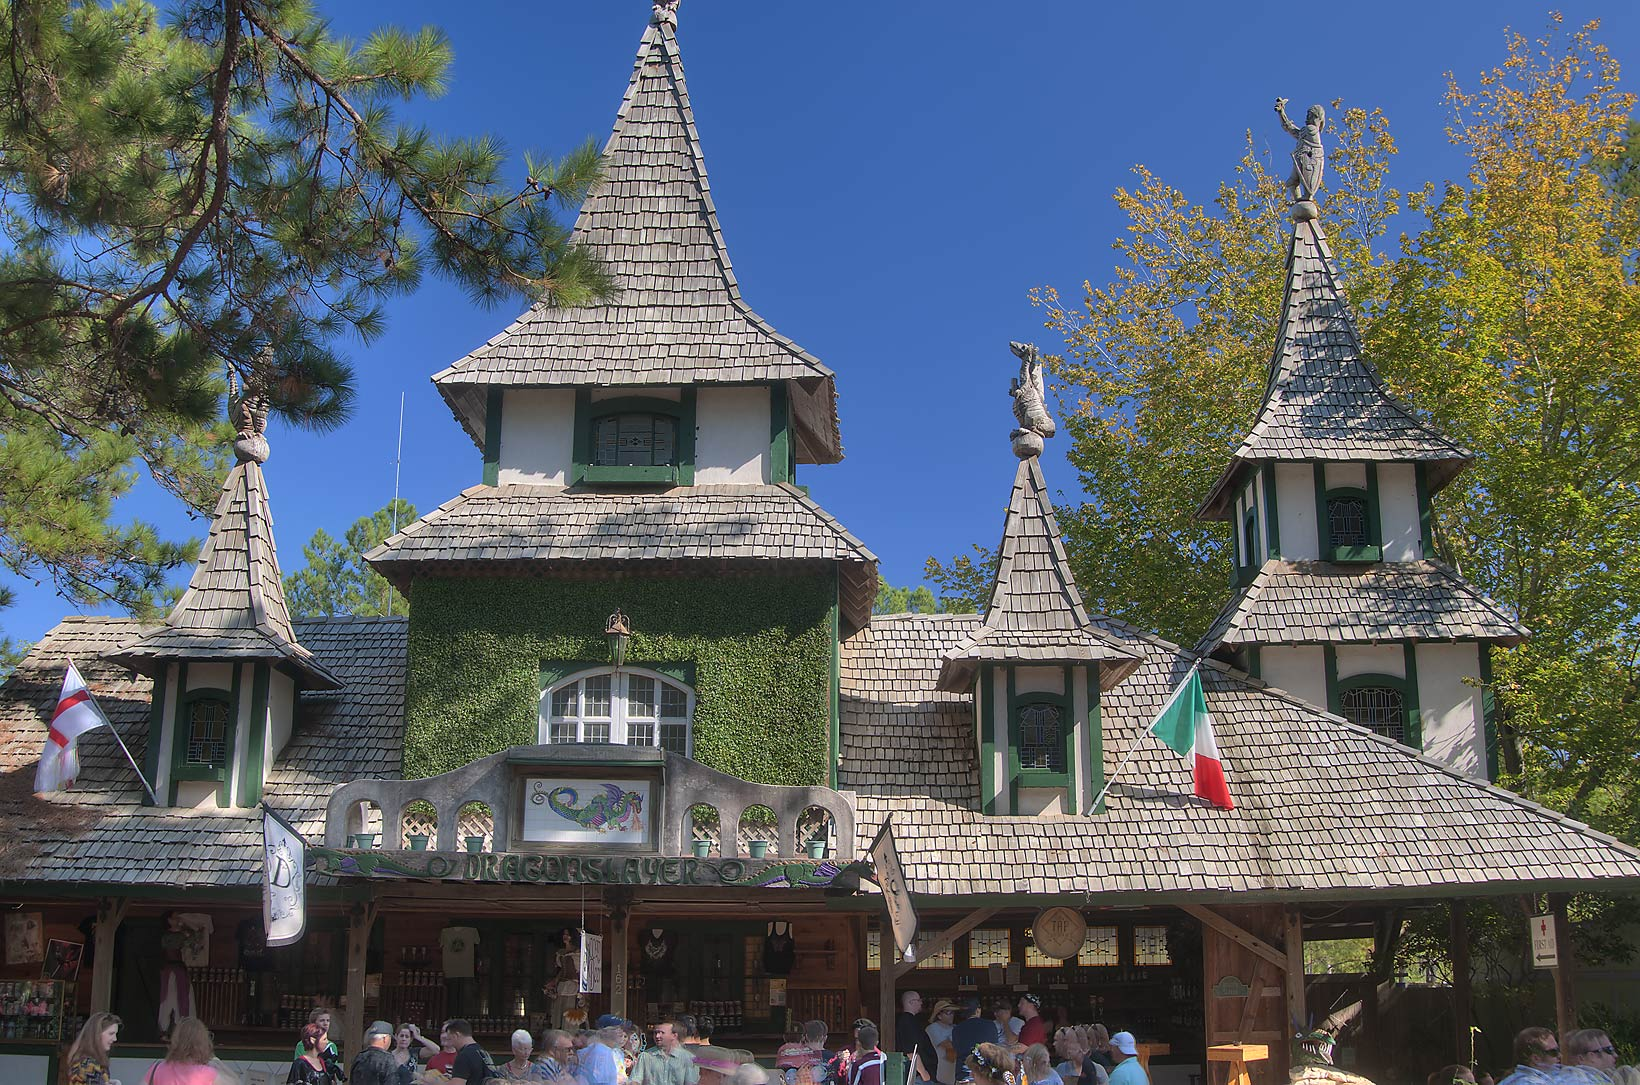 Dragon Slayer House at Texas Renaissance Festival. Plantersville, Texas